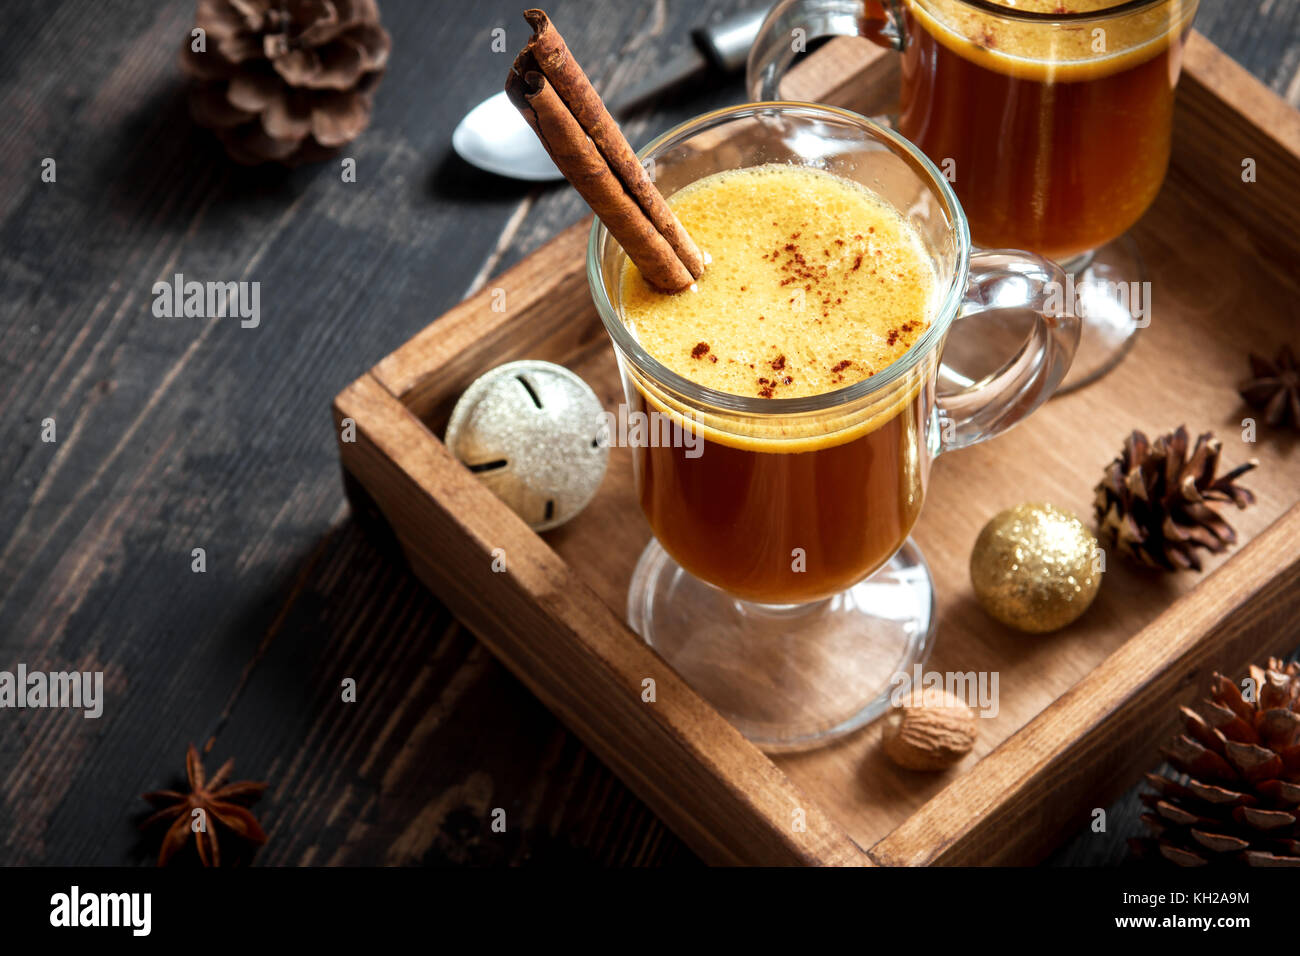 Hot buttered rum cocktail with cinnamon for Christmas and winter holidays. Homemade festive hot Christmas drink. Stock Photo